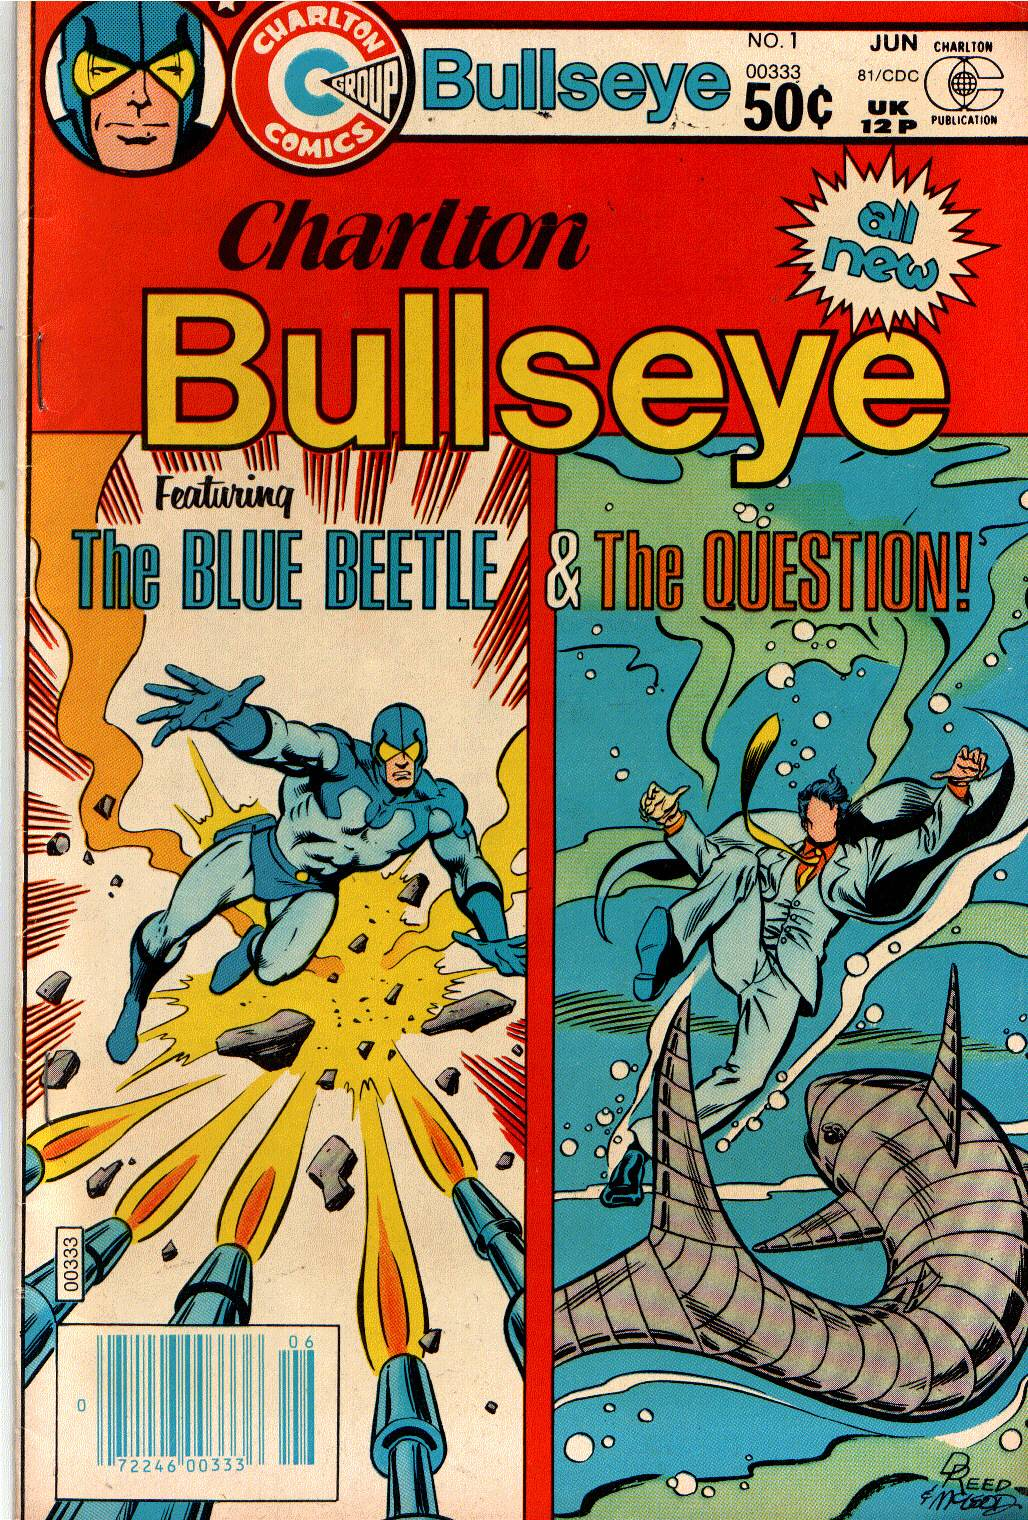 Charlton Bullseye (1981) #1, cover penciled by Dan Reed & inked by Bob McLeod.